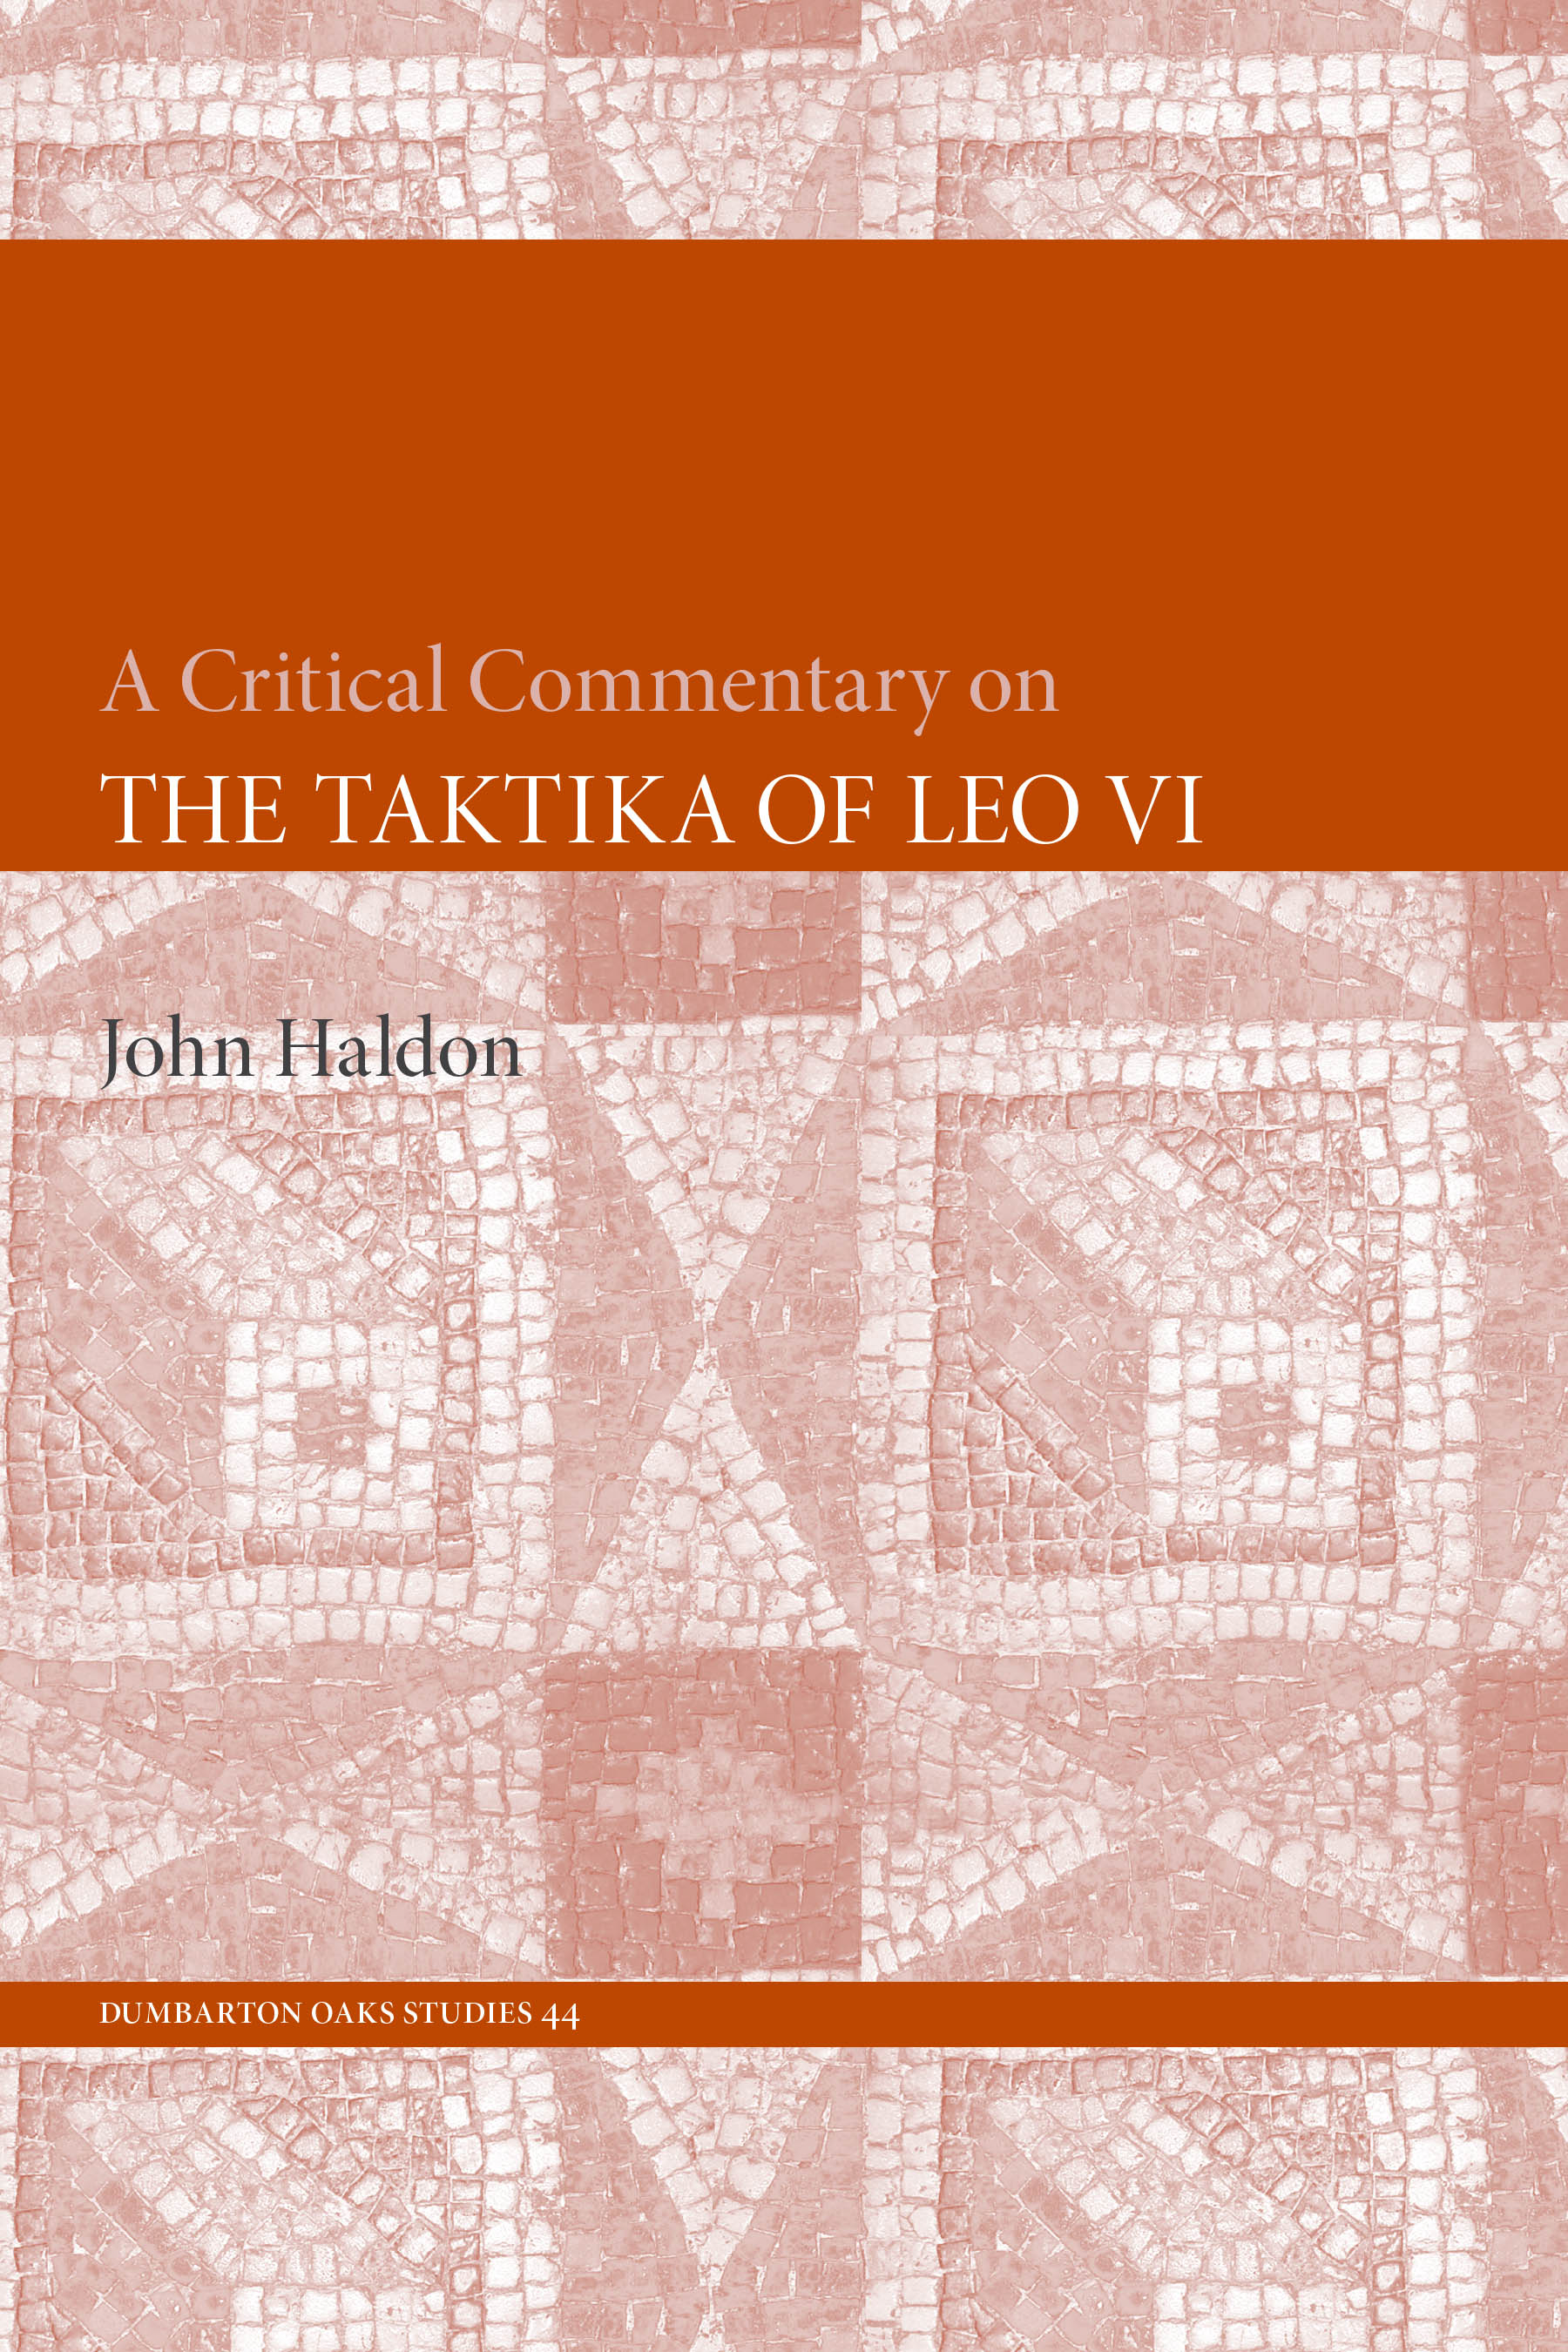 A Critical Commentary on The Taktika of Leo VI